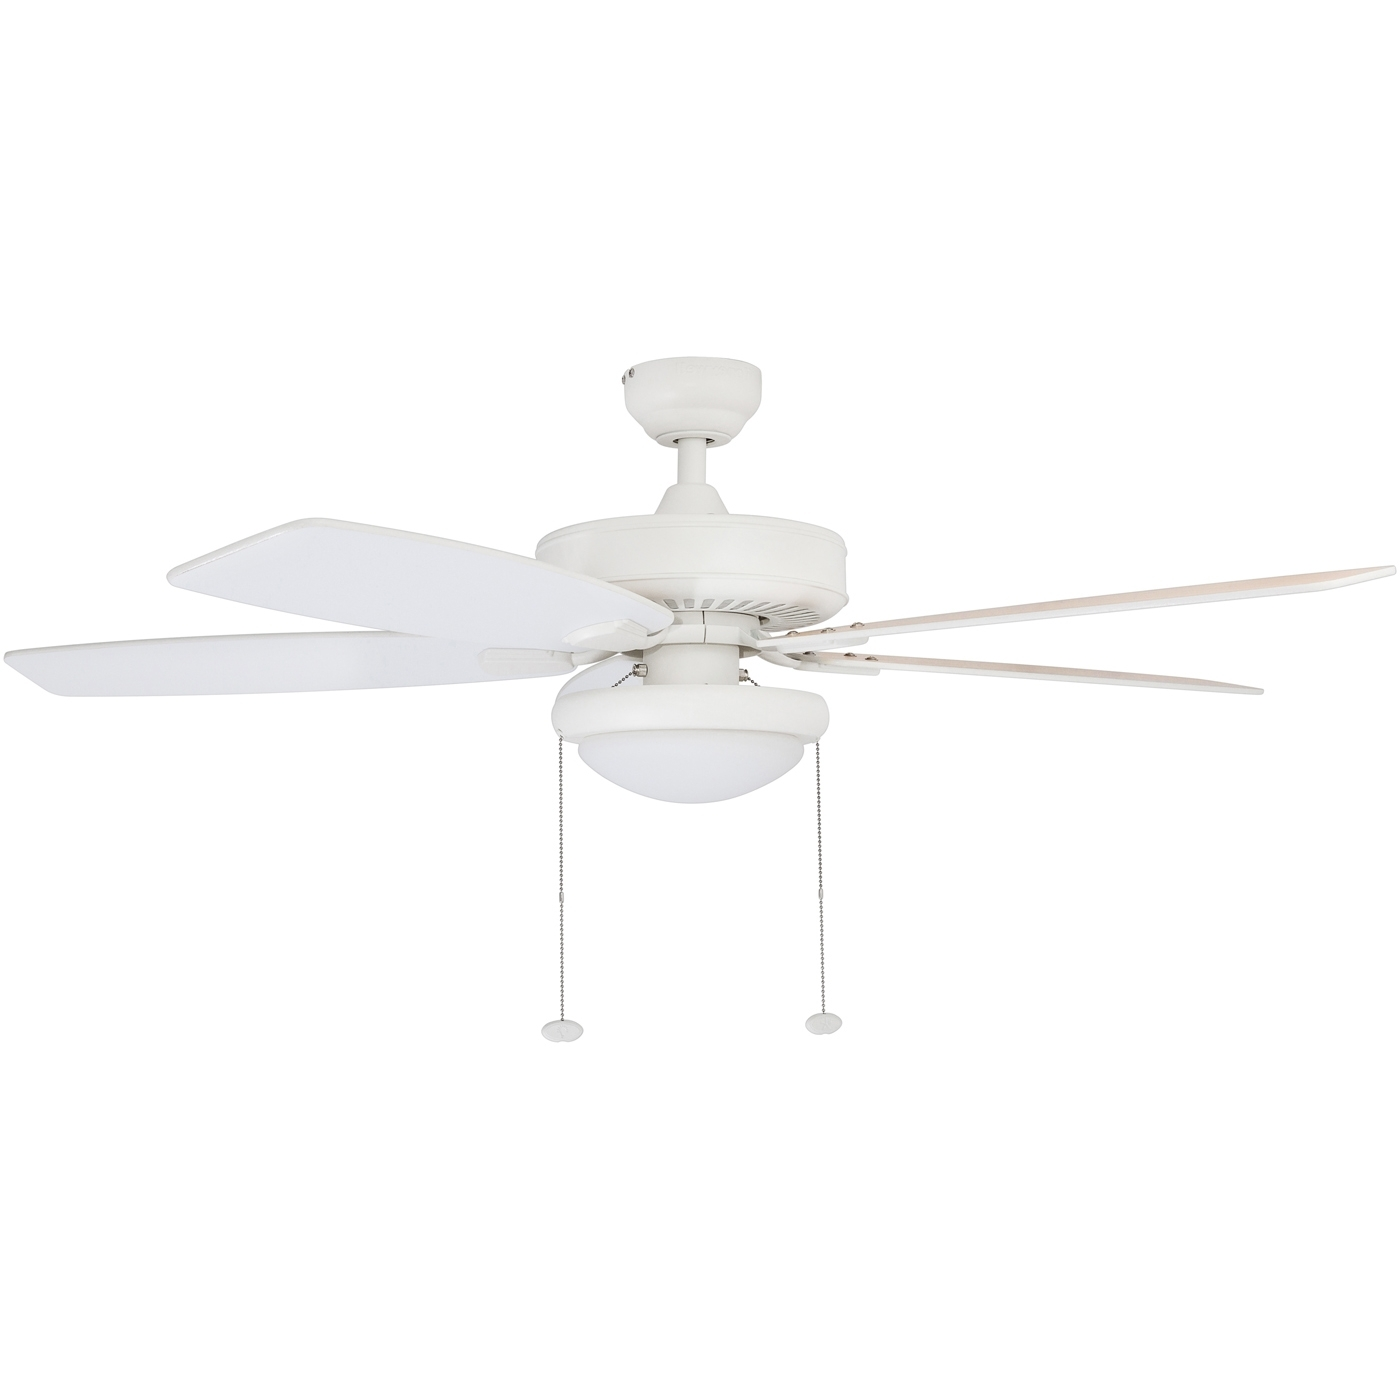 "Outdoor Ceiling Fan With Brake Pertaining To Trendy Honeywell Blufton 52"" White Outdoor Ceiling Fan – Walmart (View 12 of 20)"